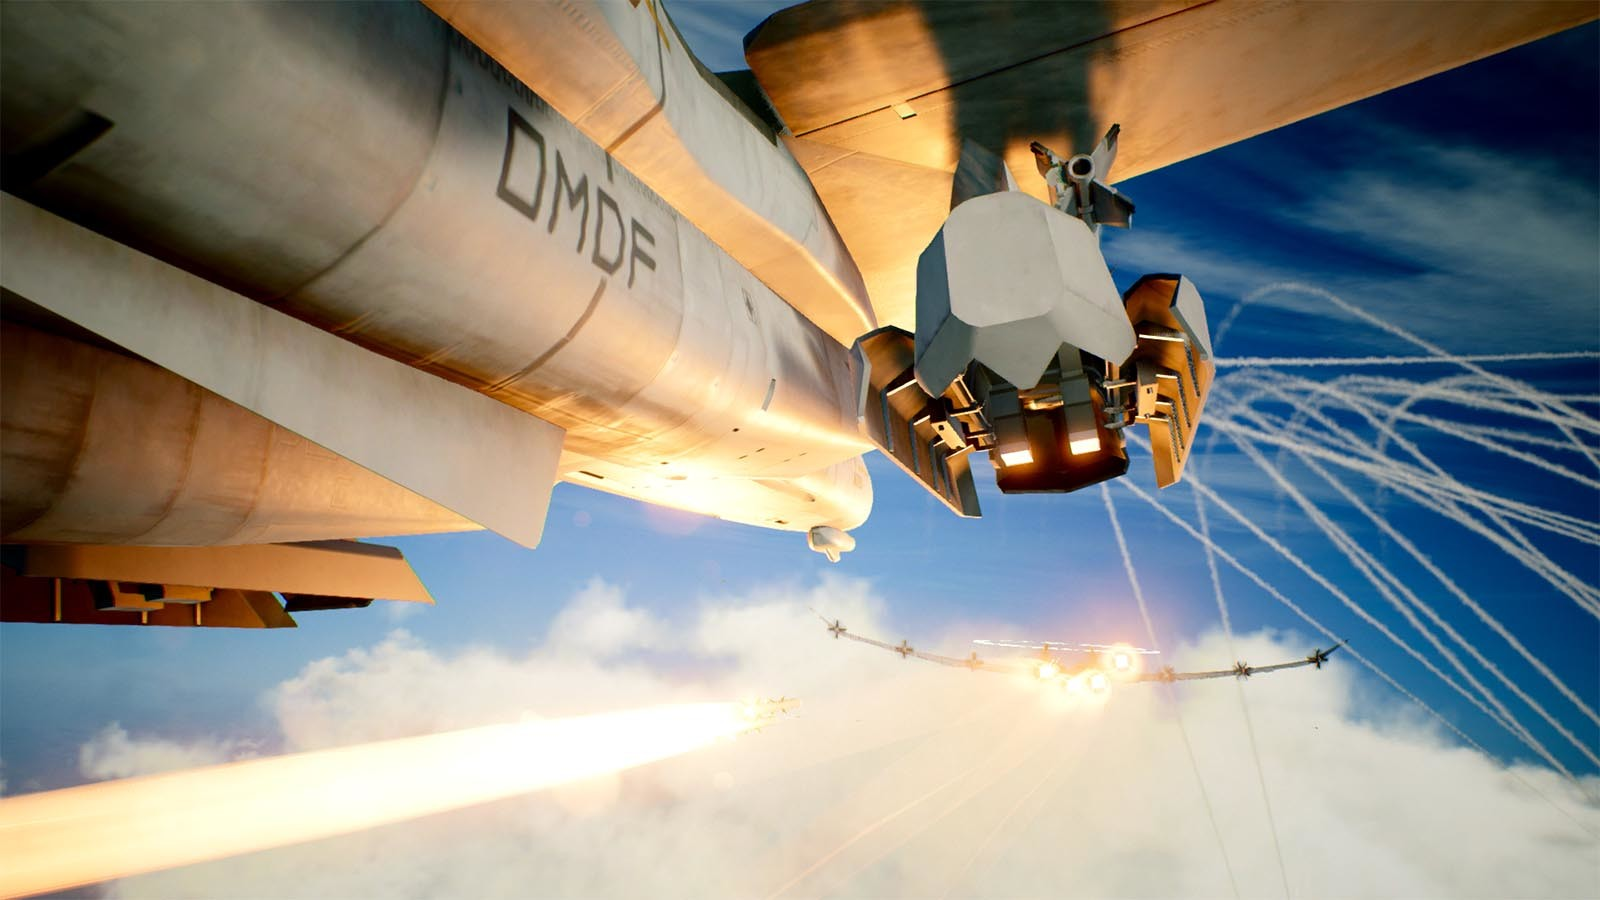 Ace Combat 7: Skies Unknown [Steam CD Key] for PC - Buy now